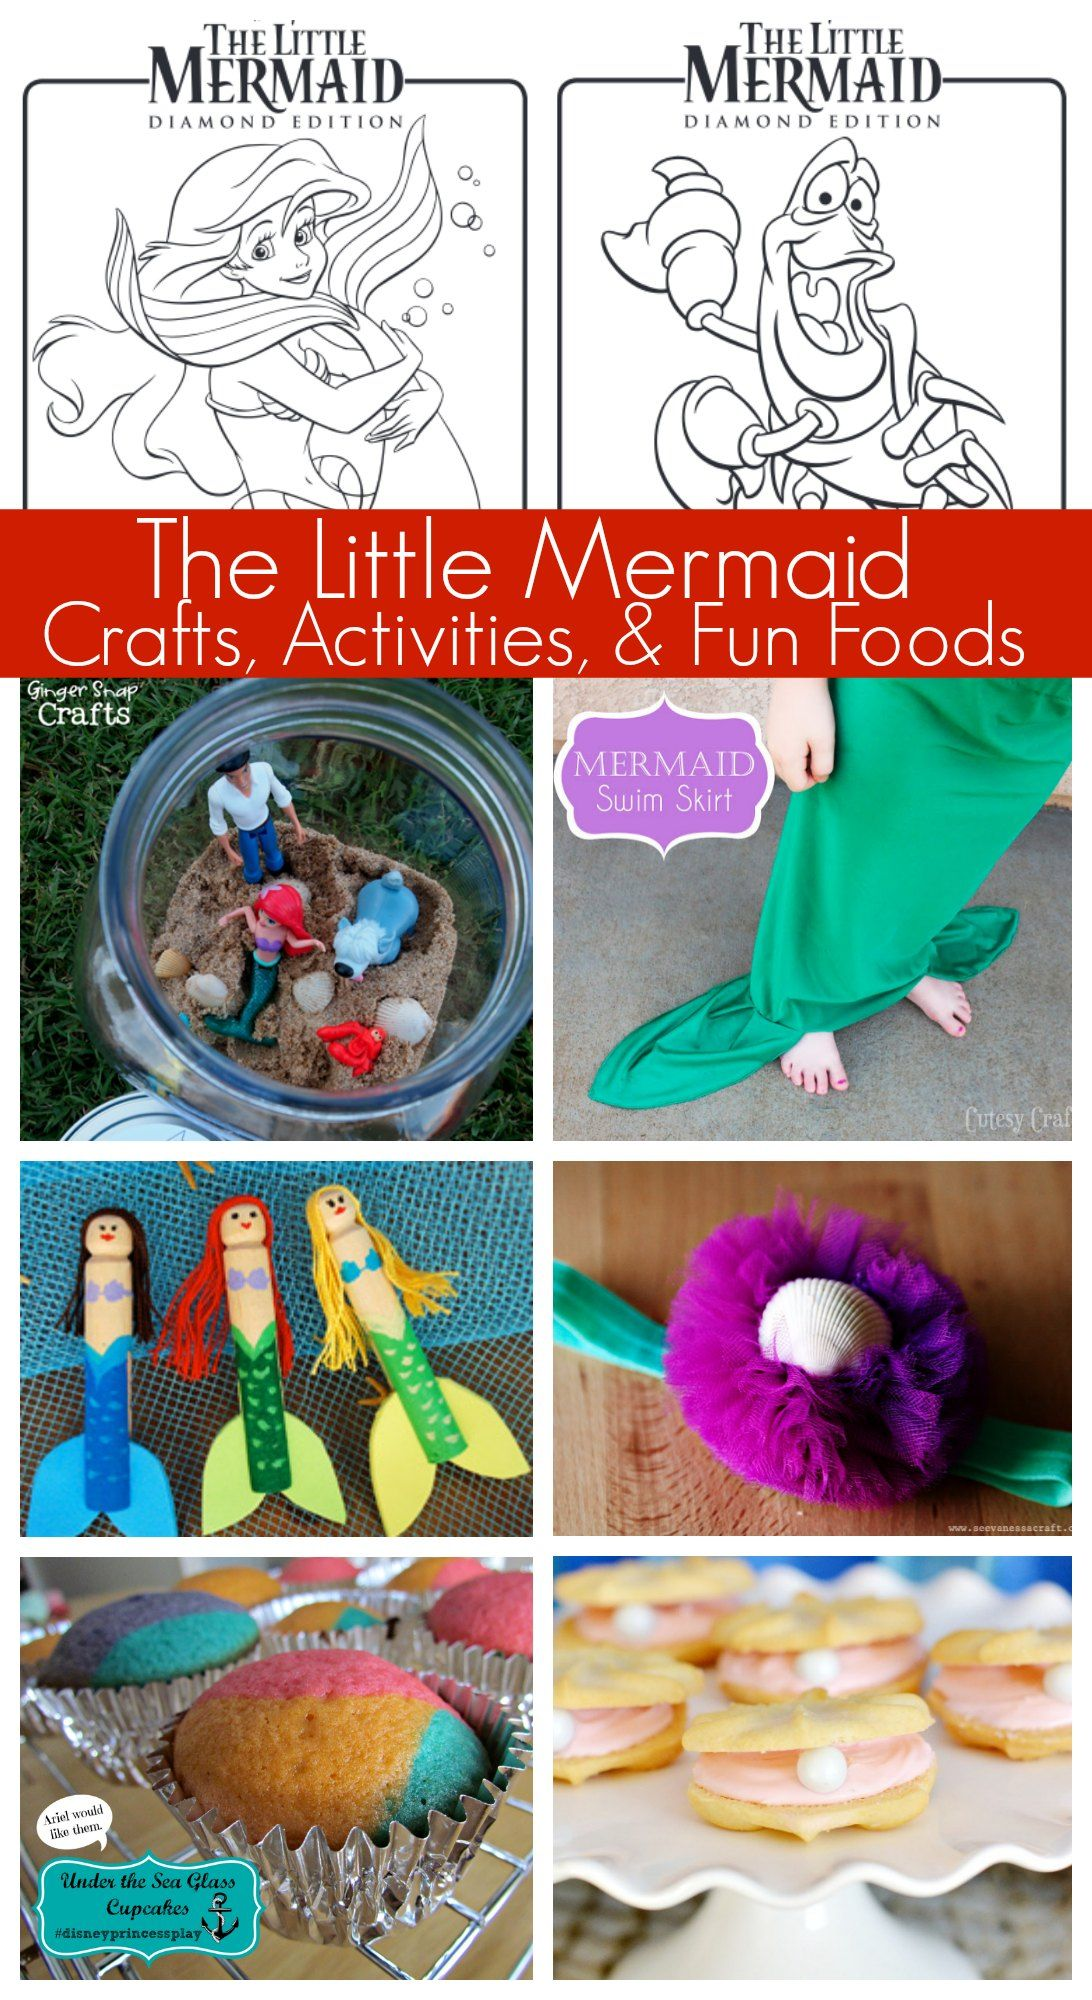 Disneyus the little mermaid activities coloring pages crafts